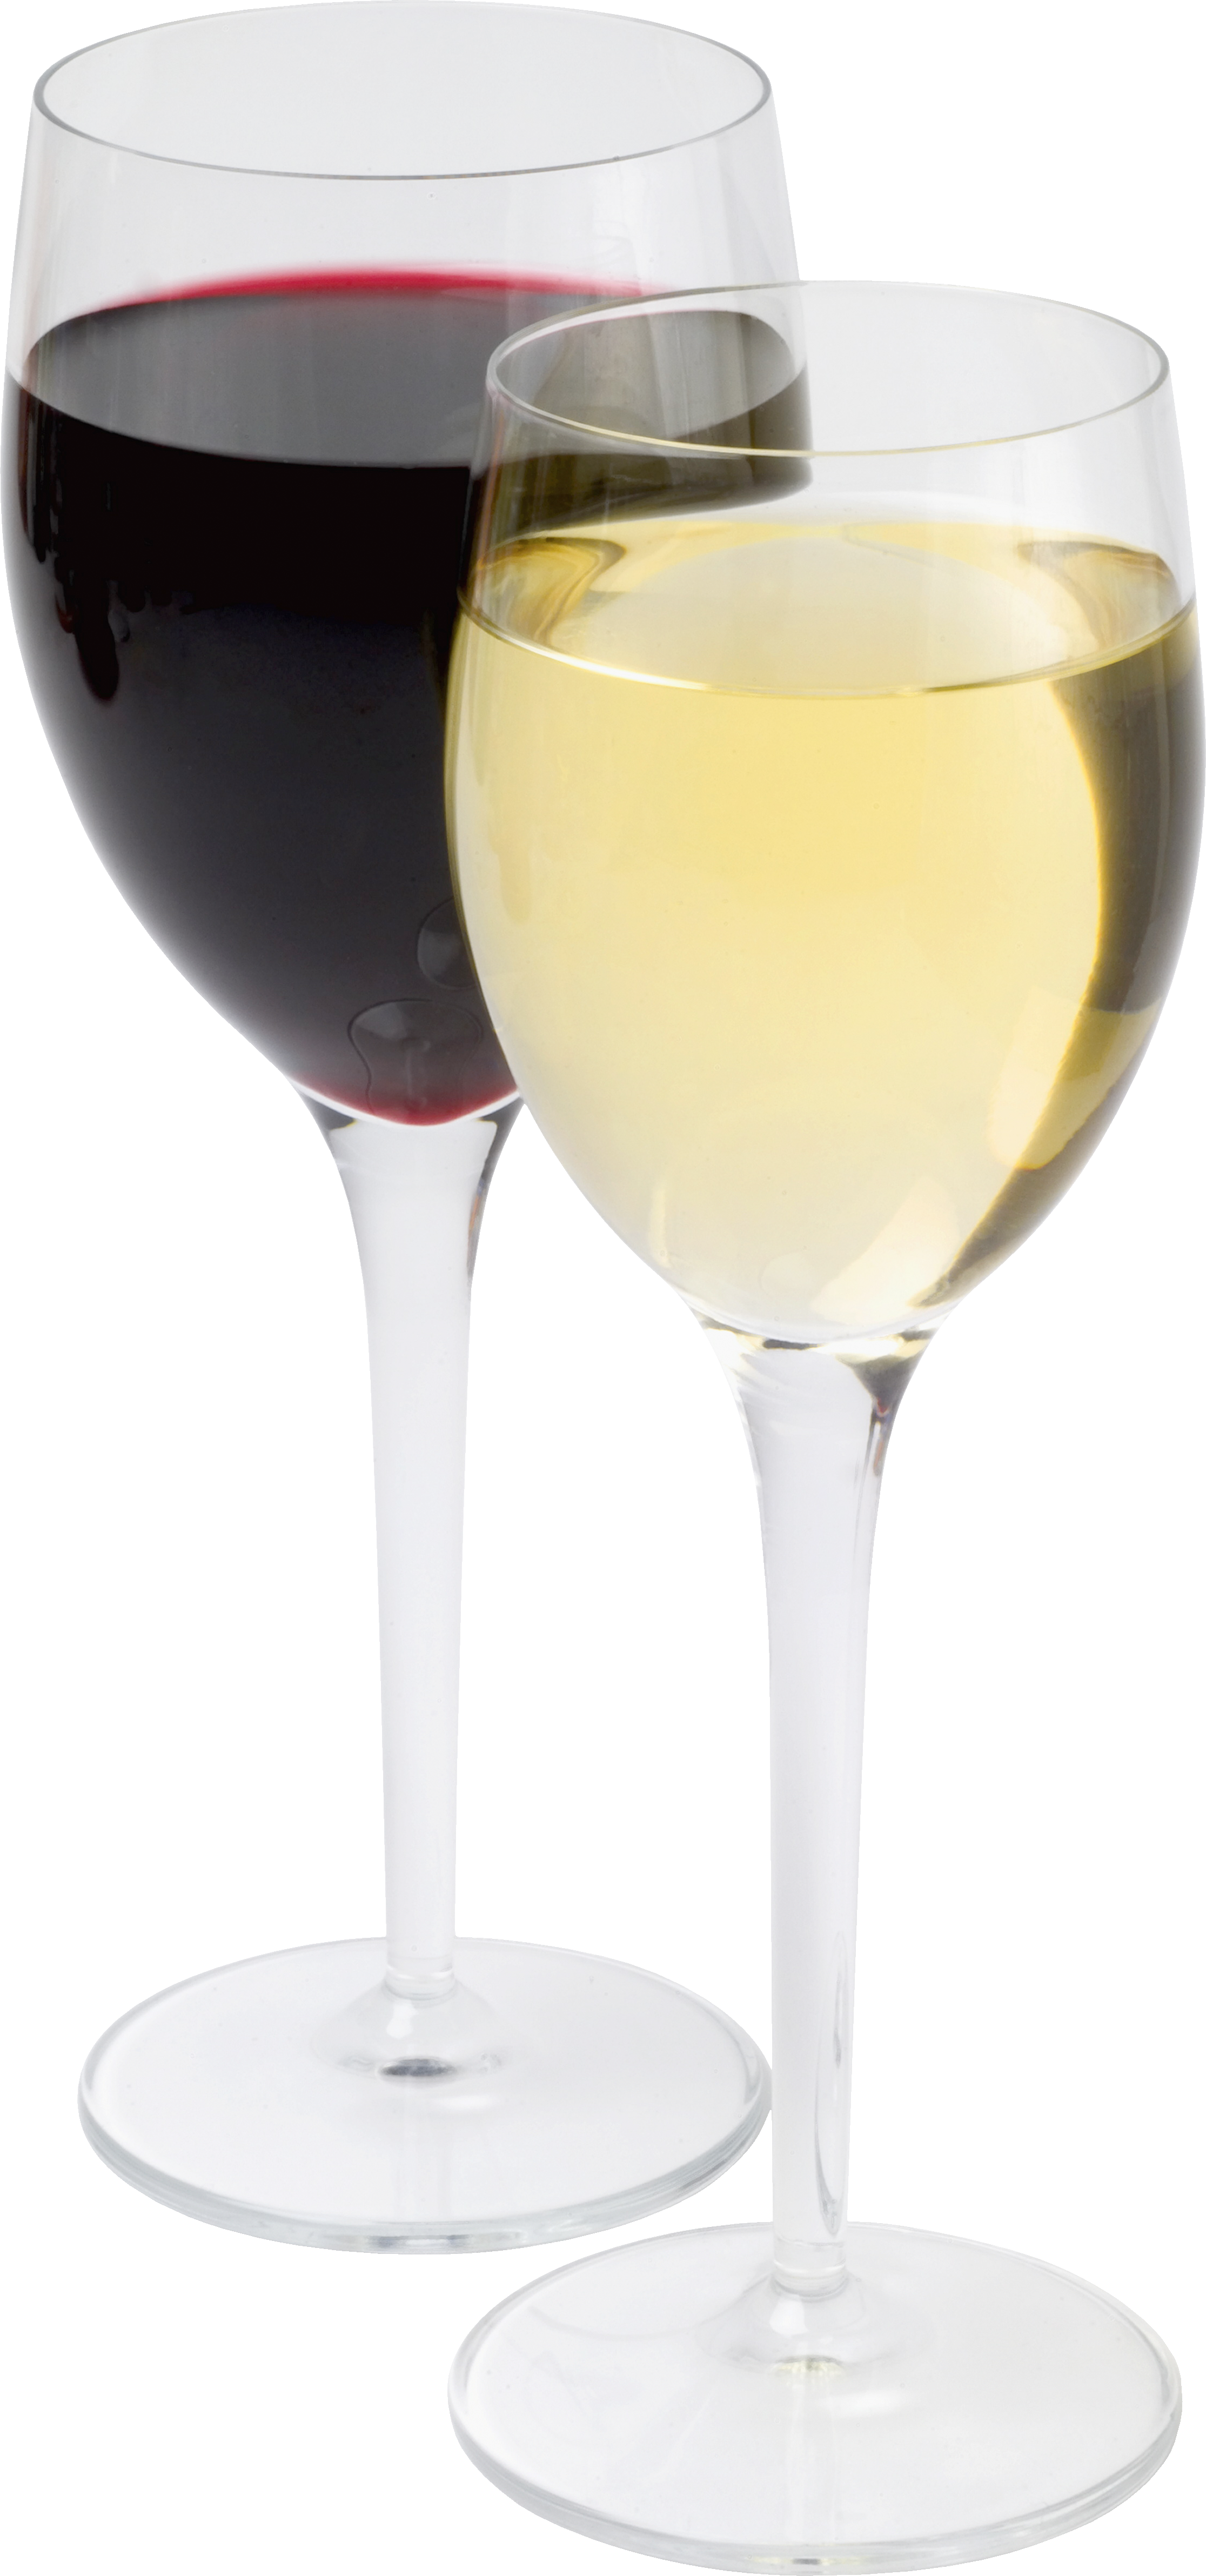 Pineapple clipart wine. Glass png images free